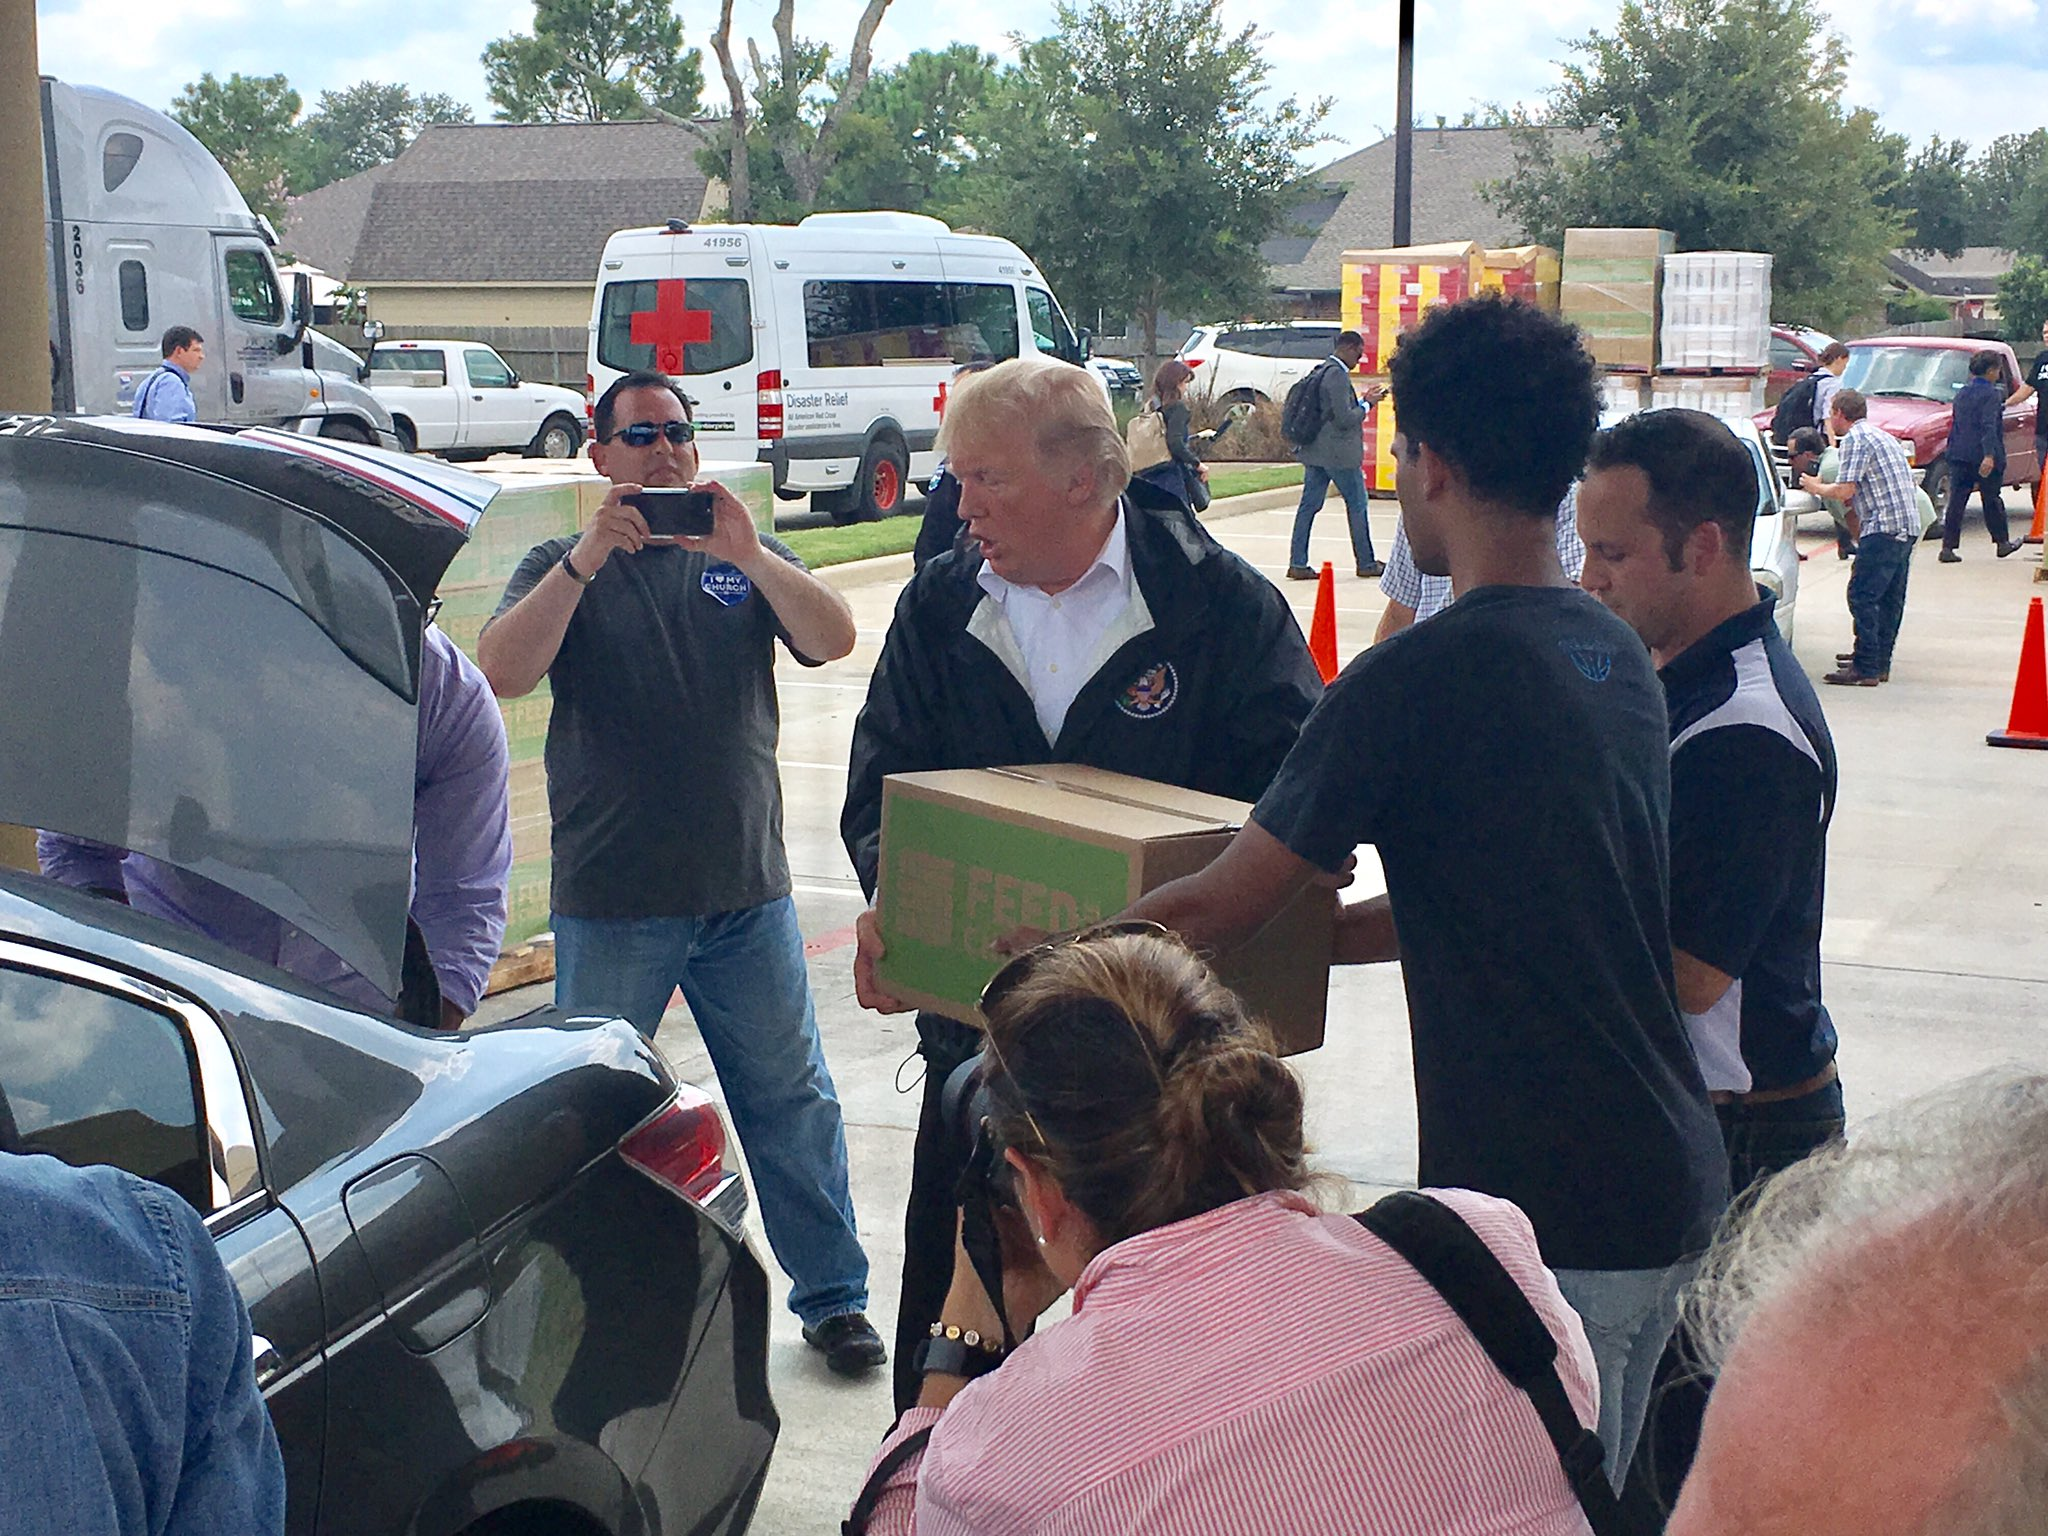 .@POTUS and @FLOTUS deliver boxes of food and supplies to those in need in Houston. #TexasStrong https://t.co/nQ9GZfM2tM